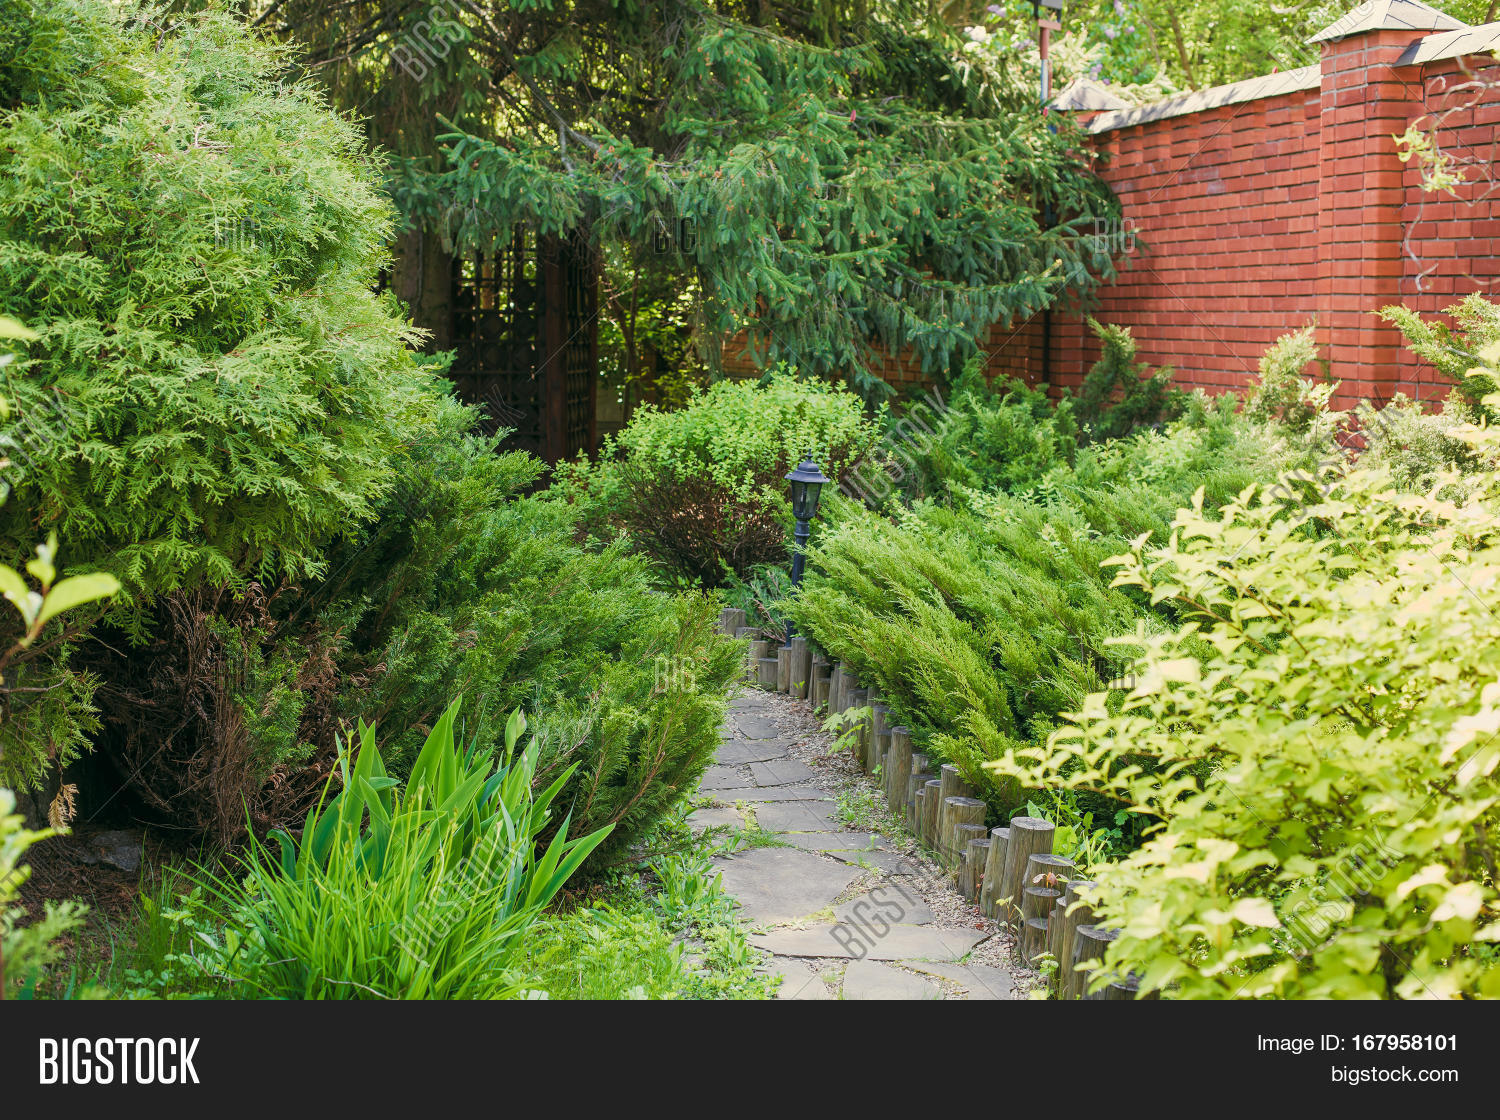 Beautiful landscape design image photo bigstock for Large bushes for landscaping